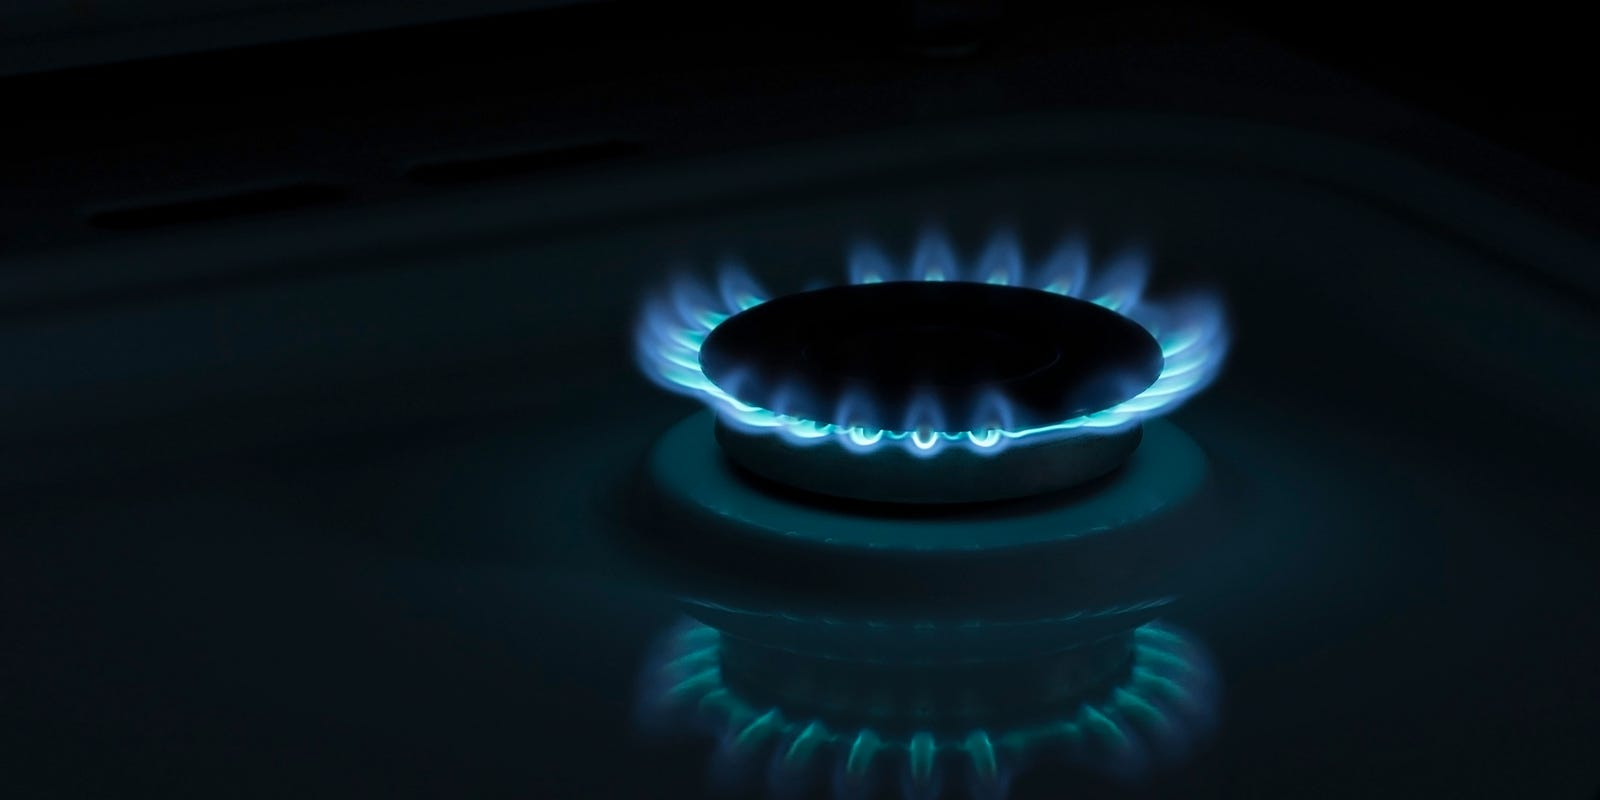 No more fire in the kitchen: (California) Cities are banning natural gas in homes to save the planet